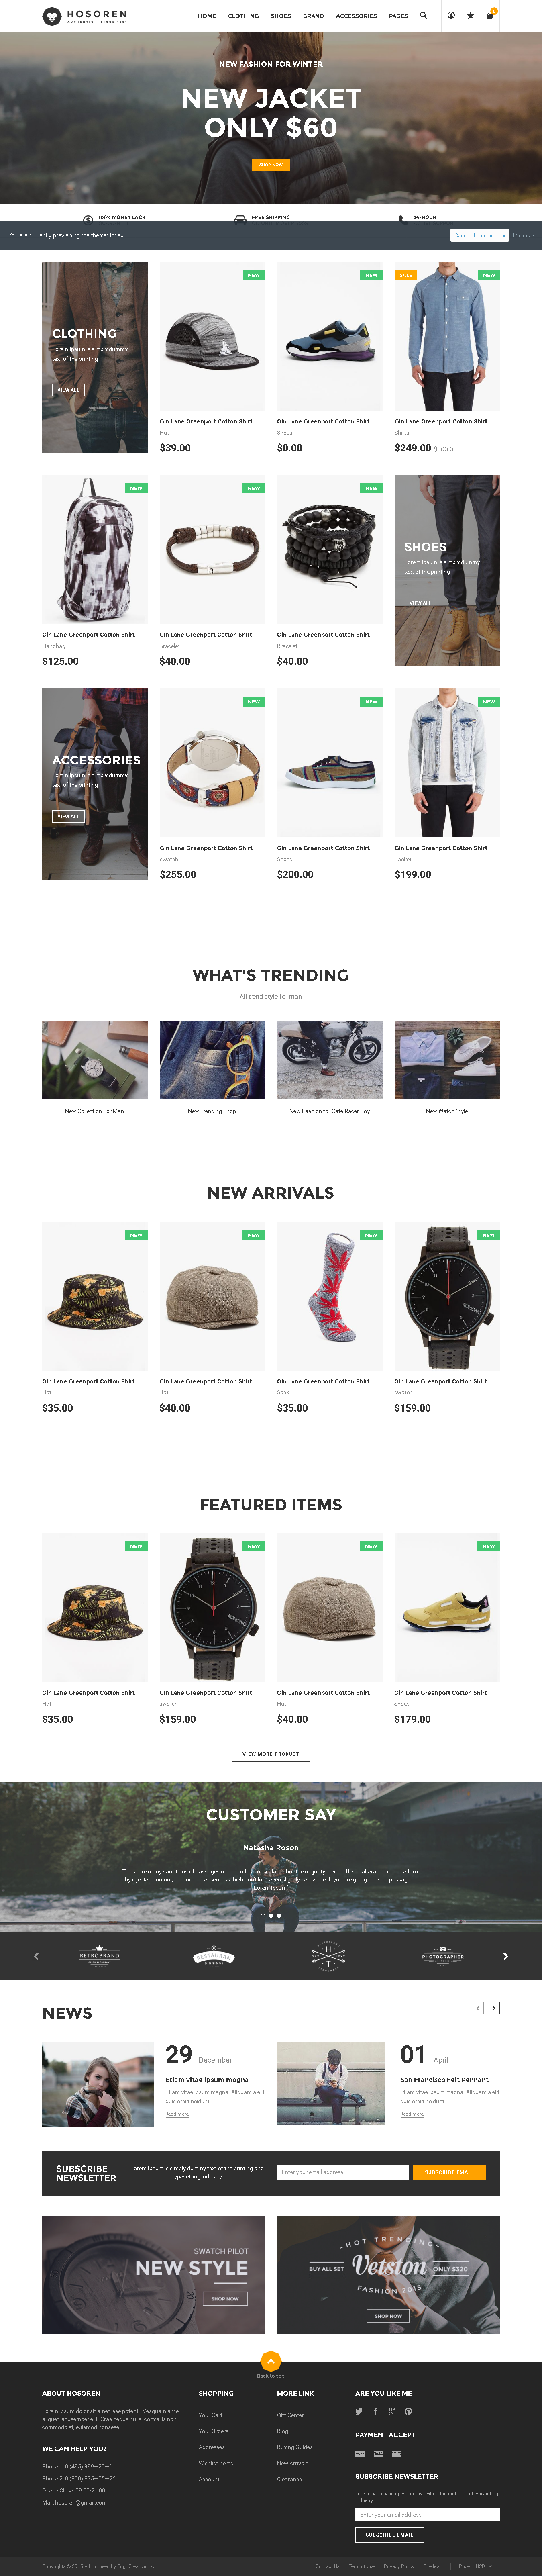 5 Best SHOPIFY Premium Themes Collection for RETAIL Store 2017 -Hosoren - Responsive Shopify Theme